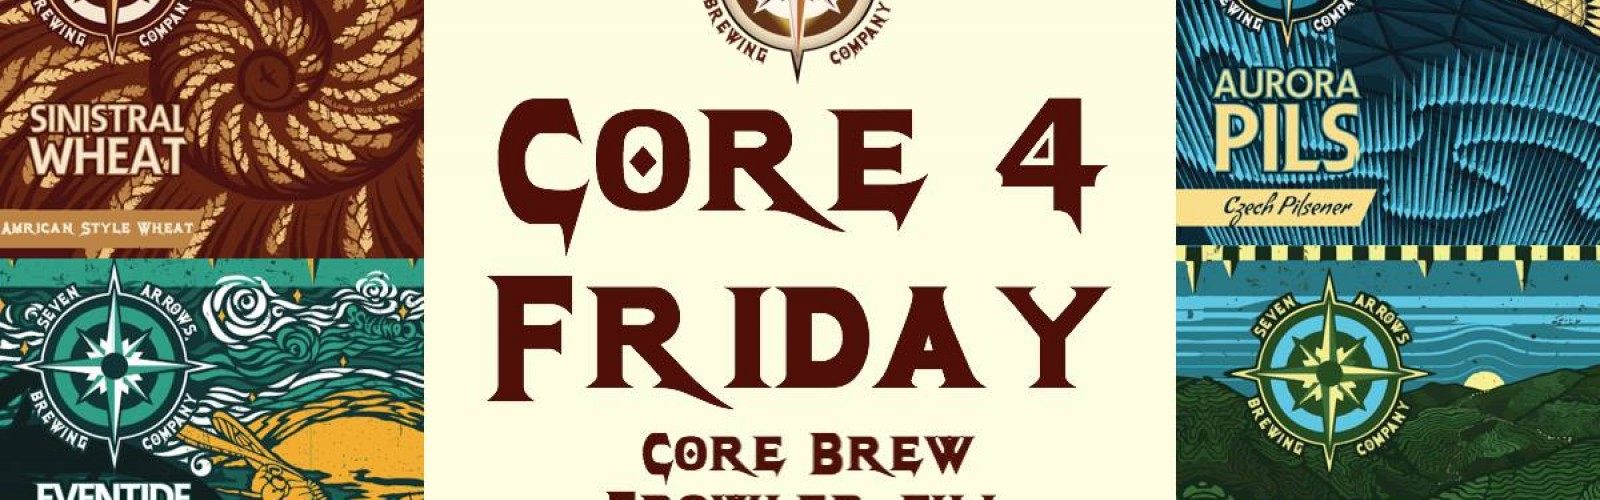 Core 4 Friday at Seven Arrows